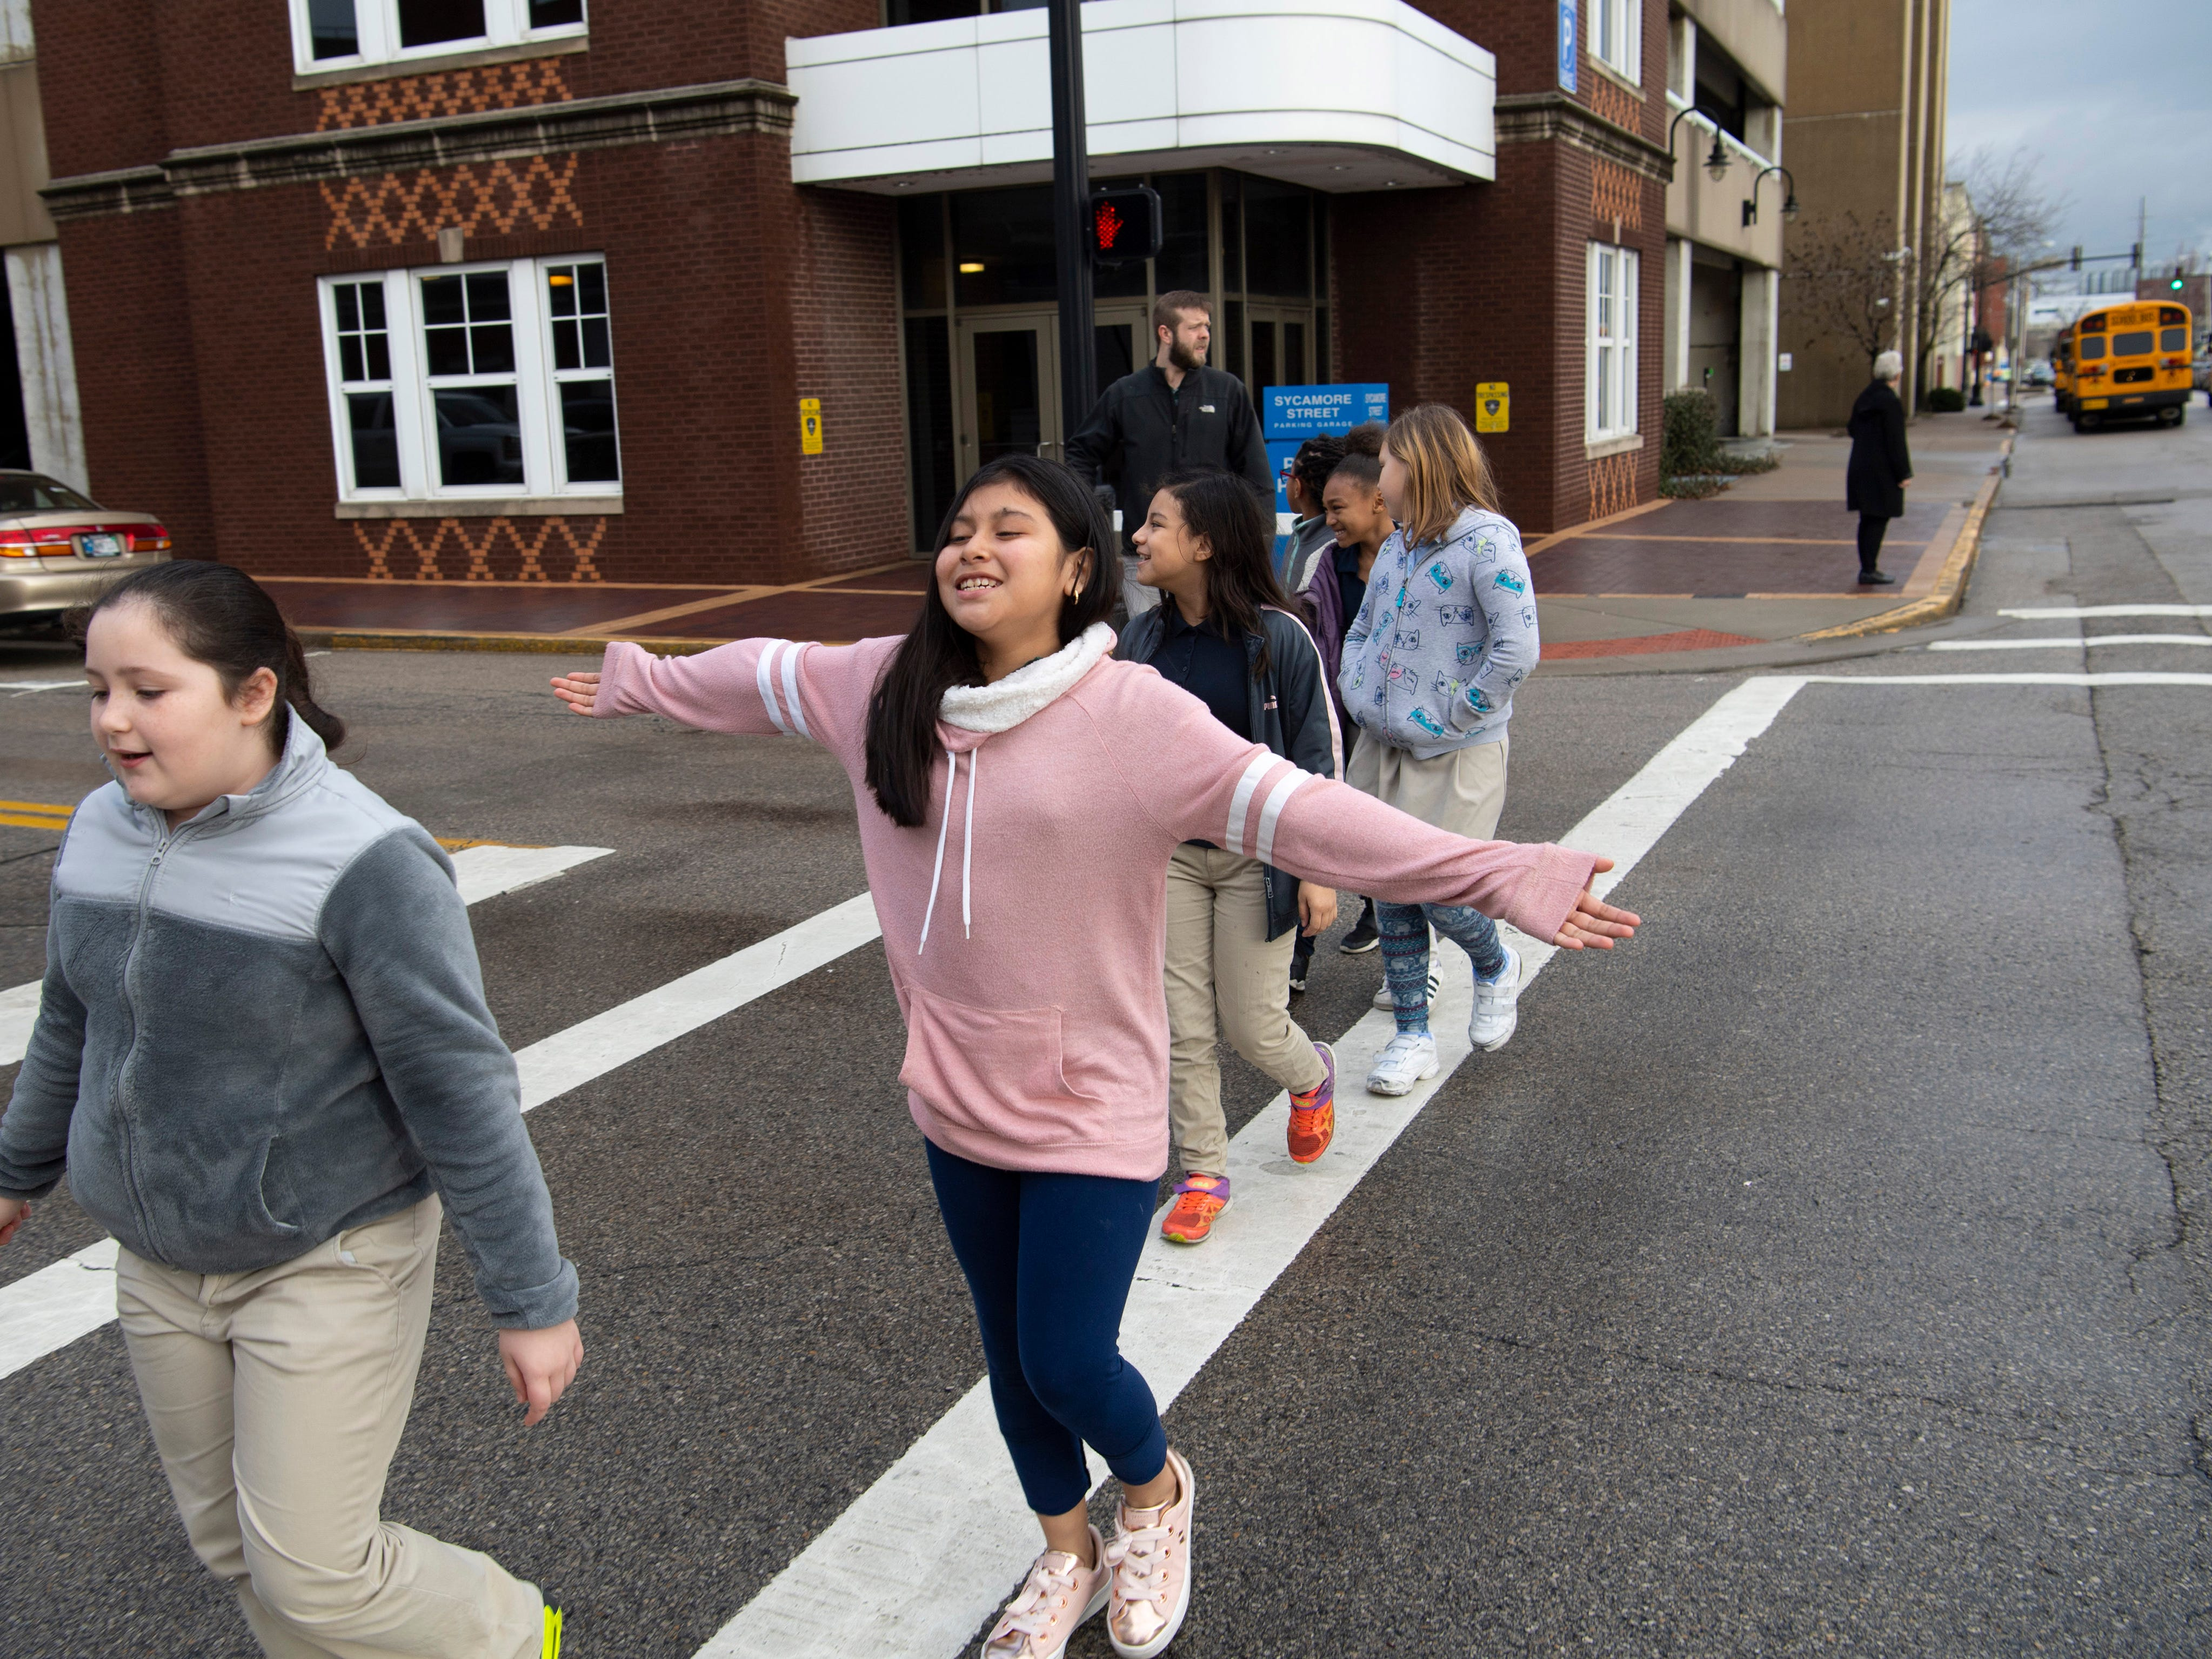 Jenifer Perez, a 4th grade student at Stockwell Elementary School, second left, heads into the Young People's Concerts where the Evansville Philharmonic Orchestra was going to play at The Victory Thursday morning.